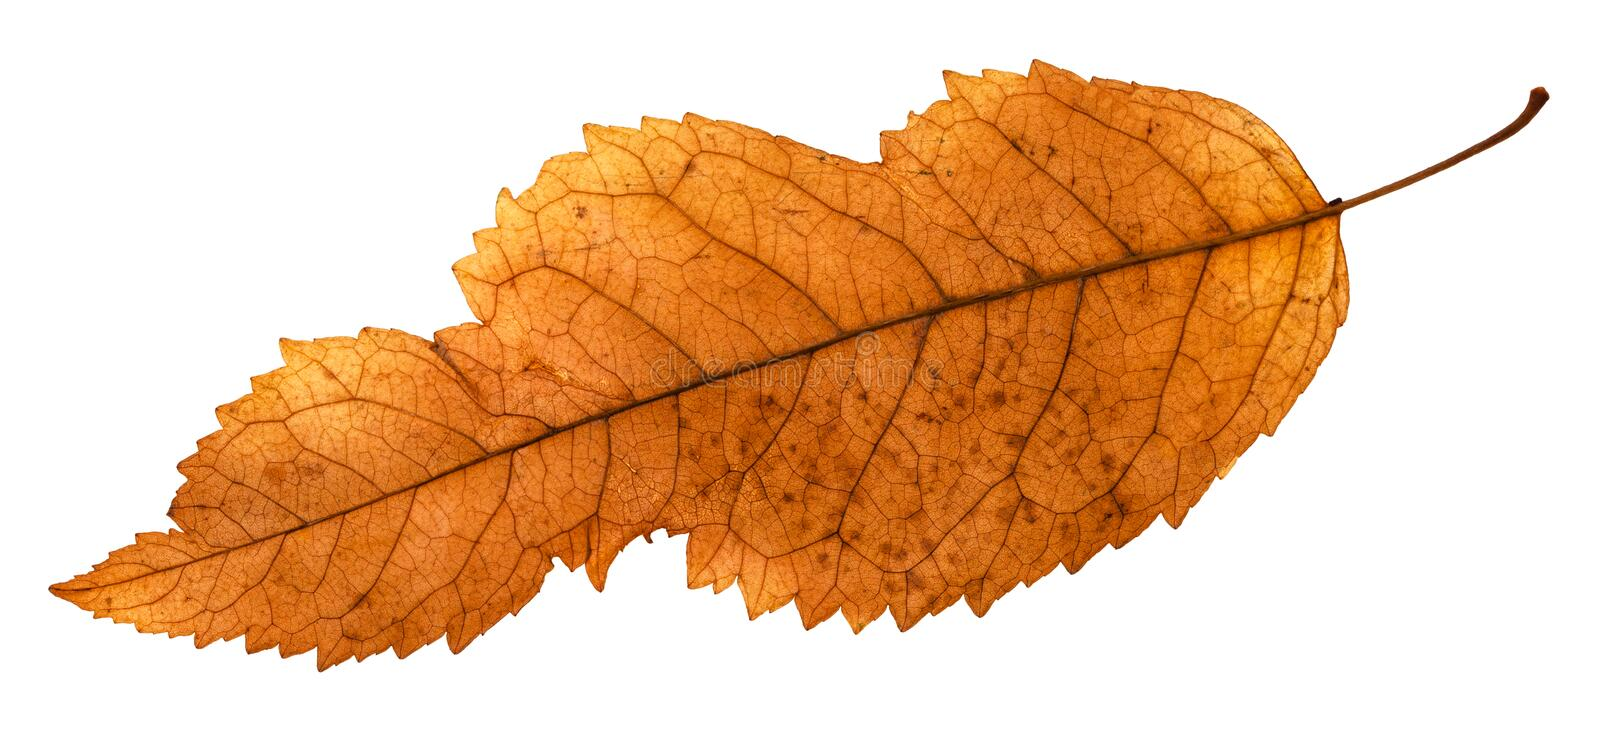 back side of broken leaf of ash tree isolated royalty free stock images